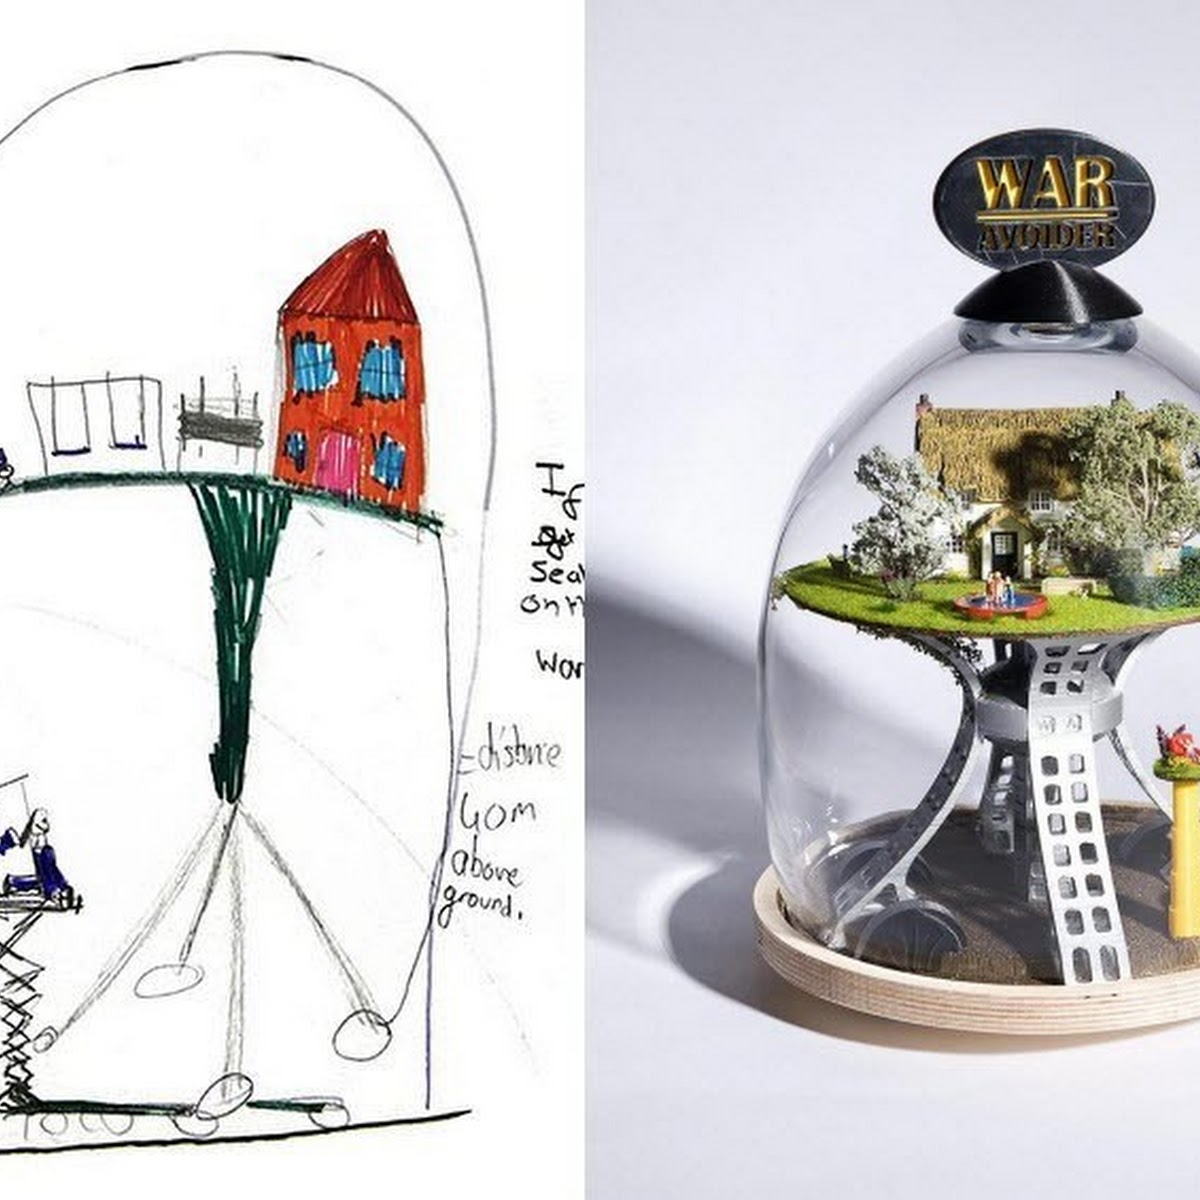 Dominic Wilcox Turns Kids' Crazy Inventions Into Real Products